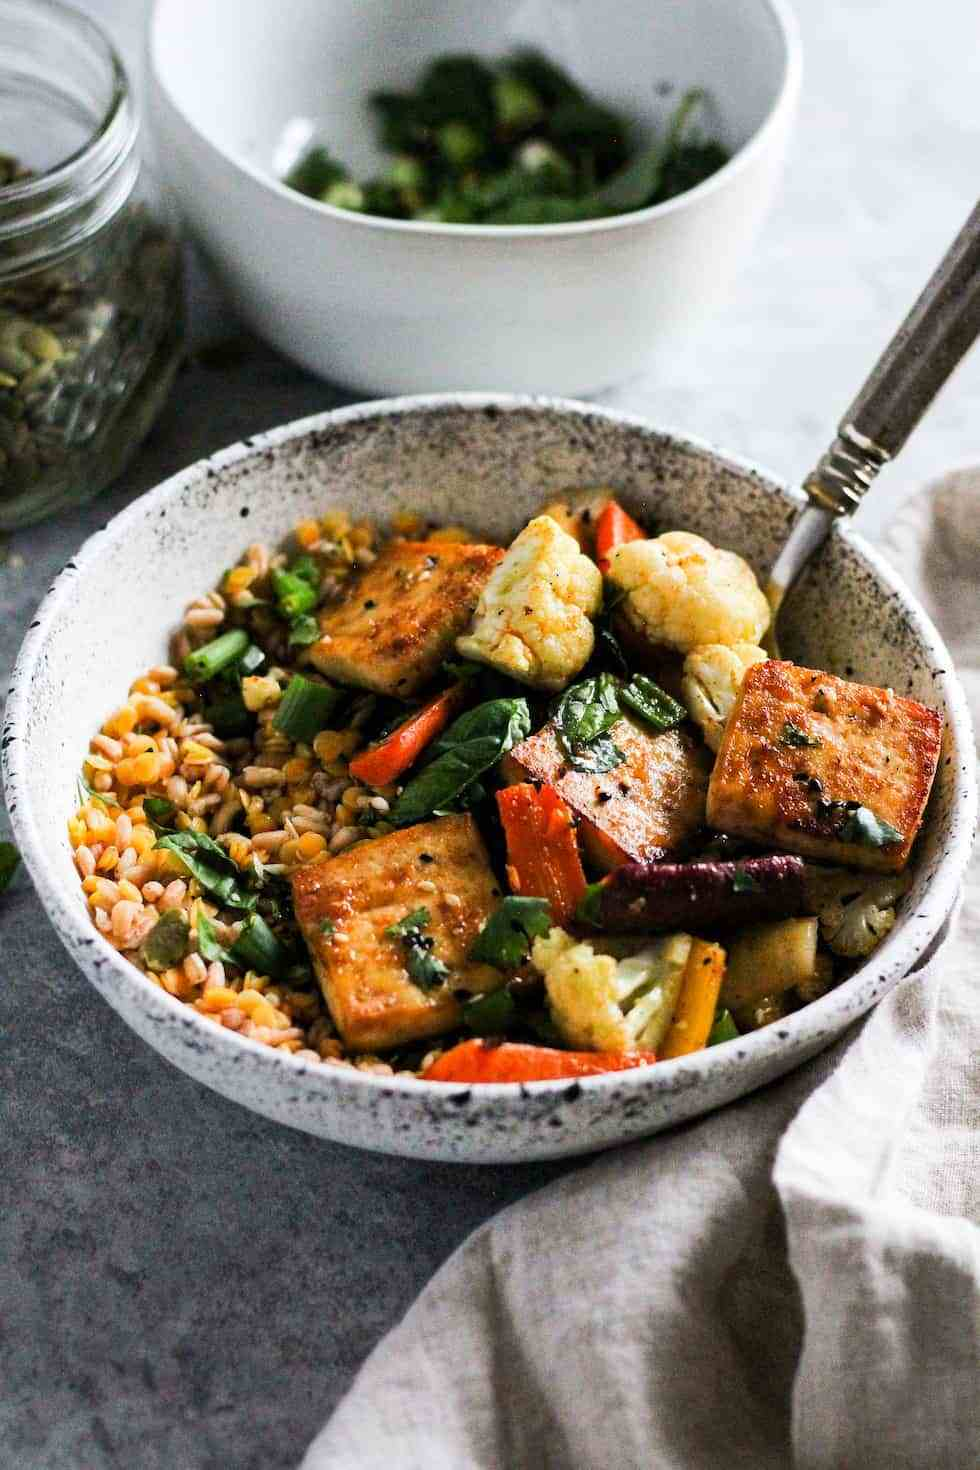 Tofu and veggies in white bowls on grey background.